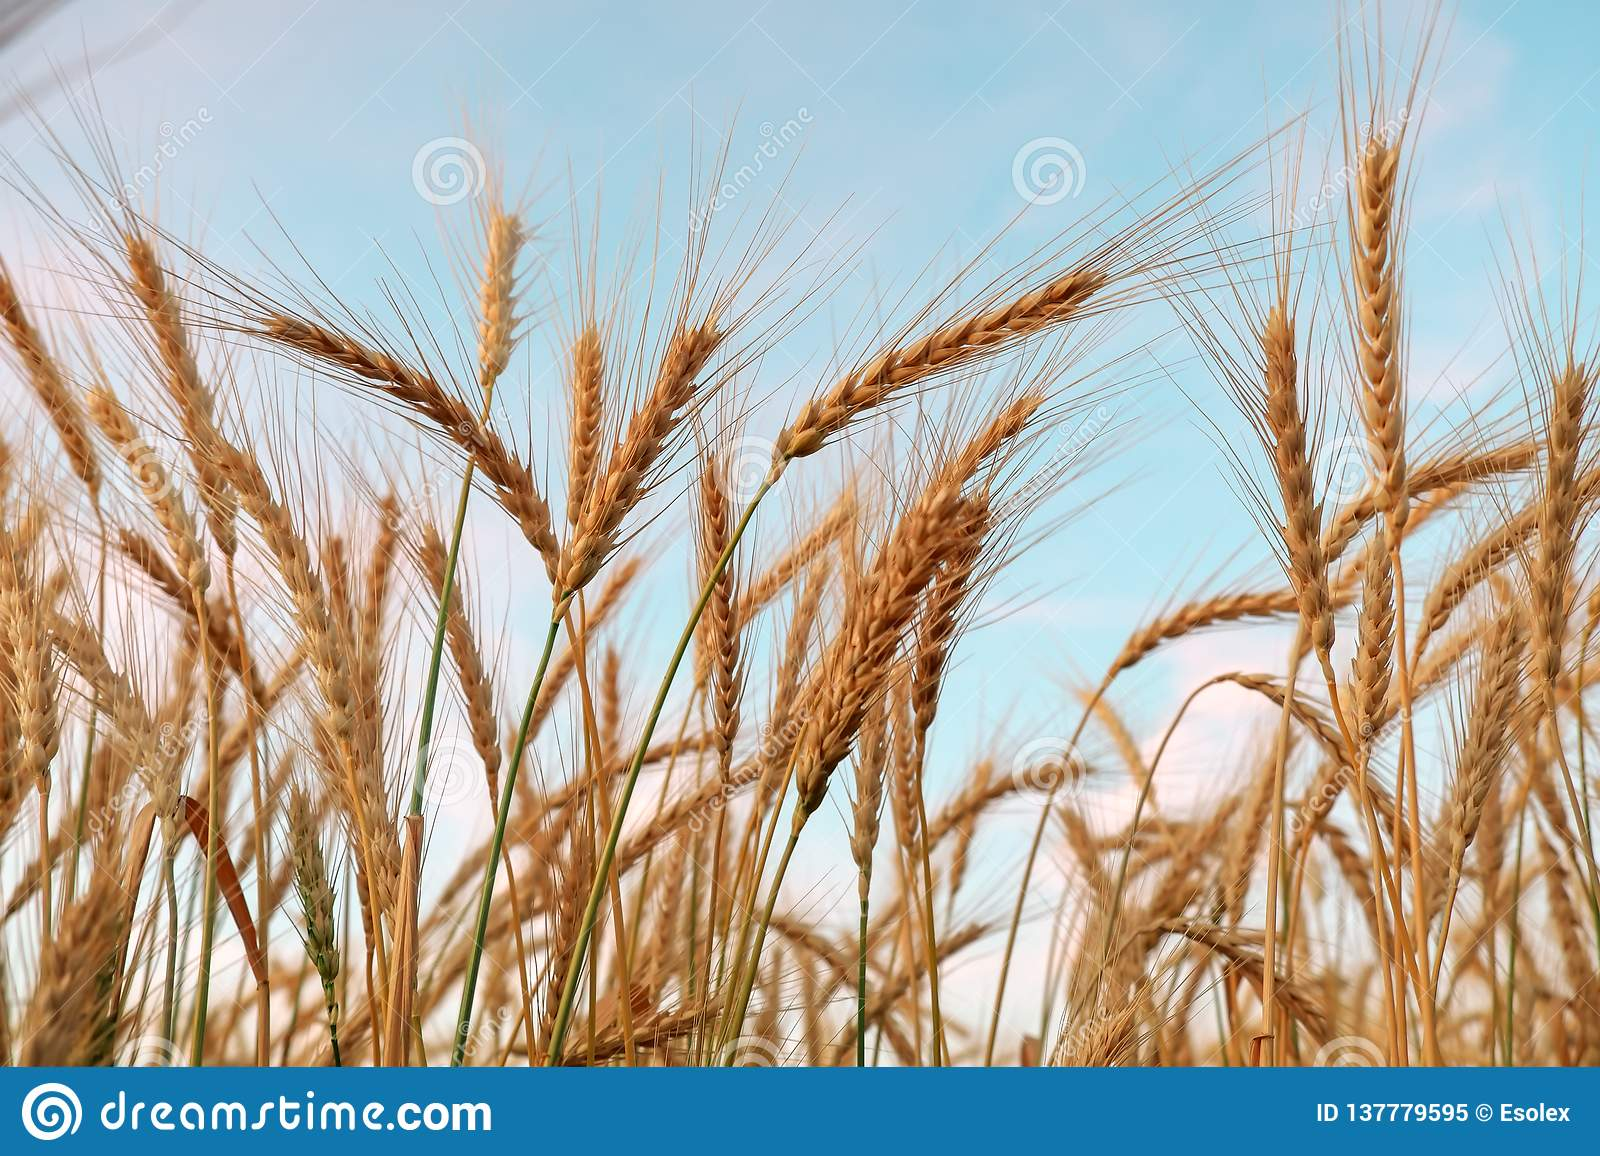 Golden ripe wheat field, sunny day, agricultural landscape, growing plant, cultivate crop